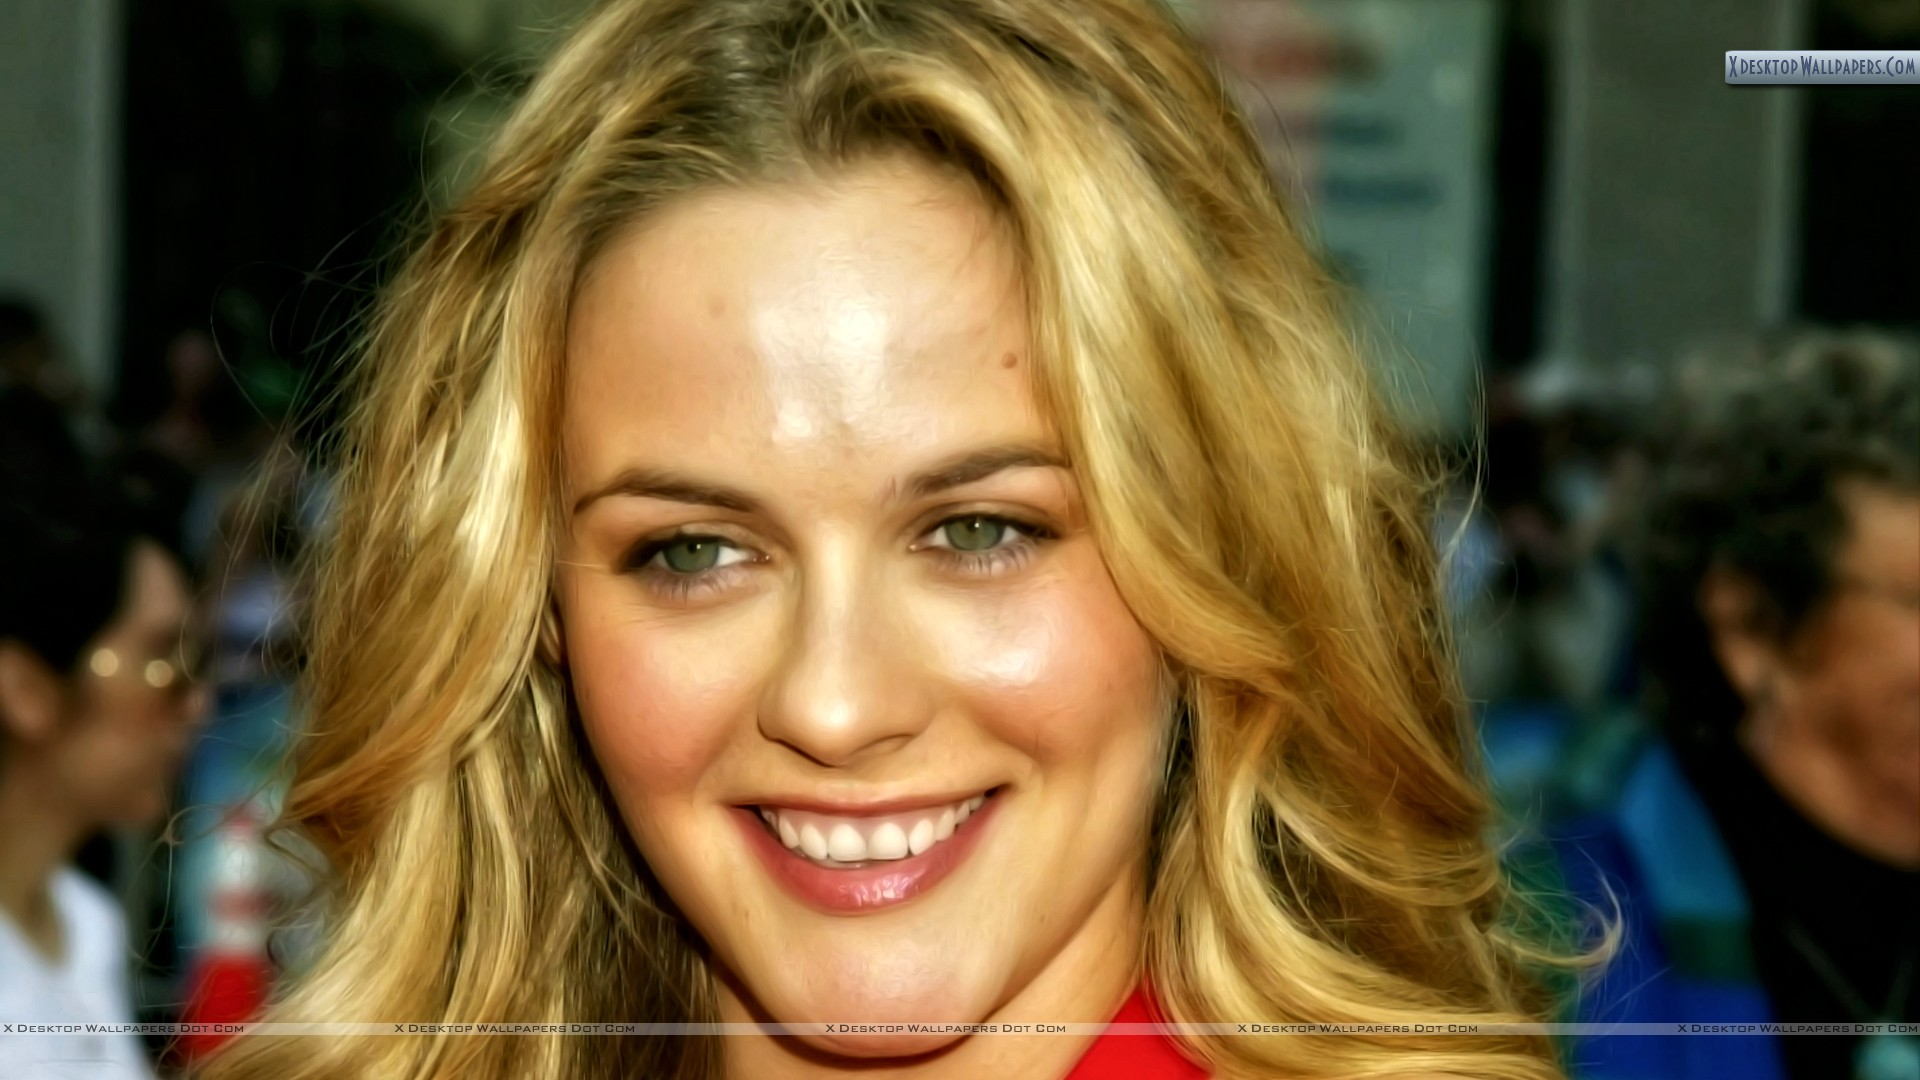 Alicia Silverstone Smiling Face Closeup N Golden Hairs Wallpaper